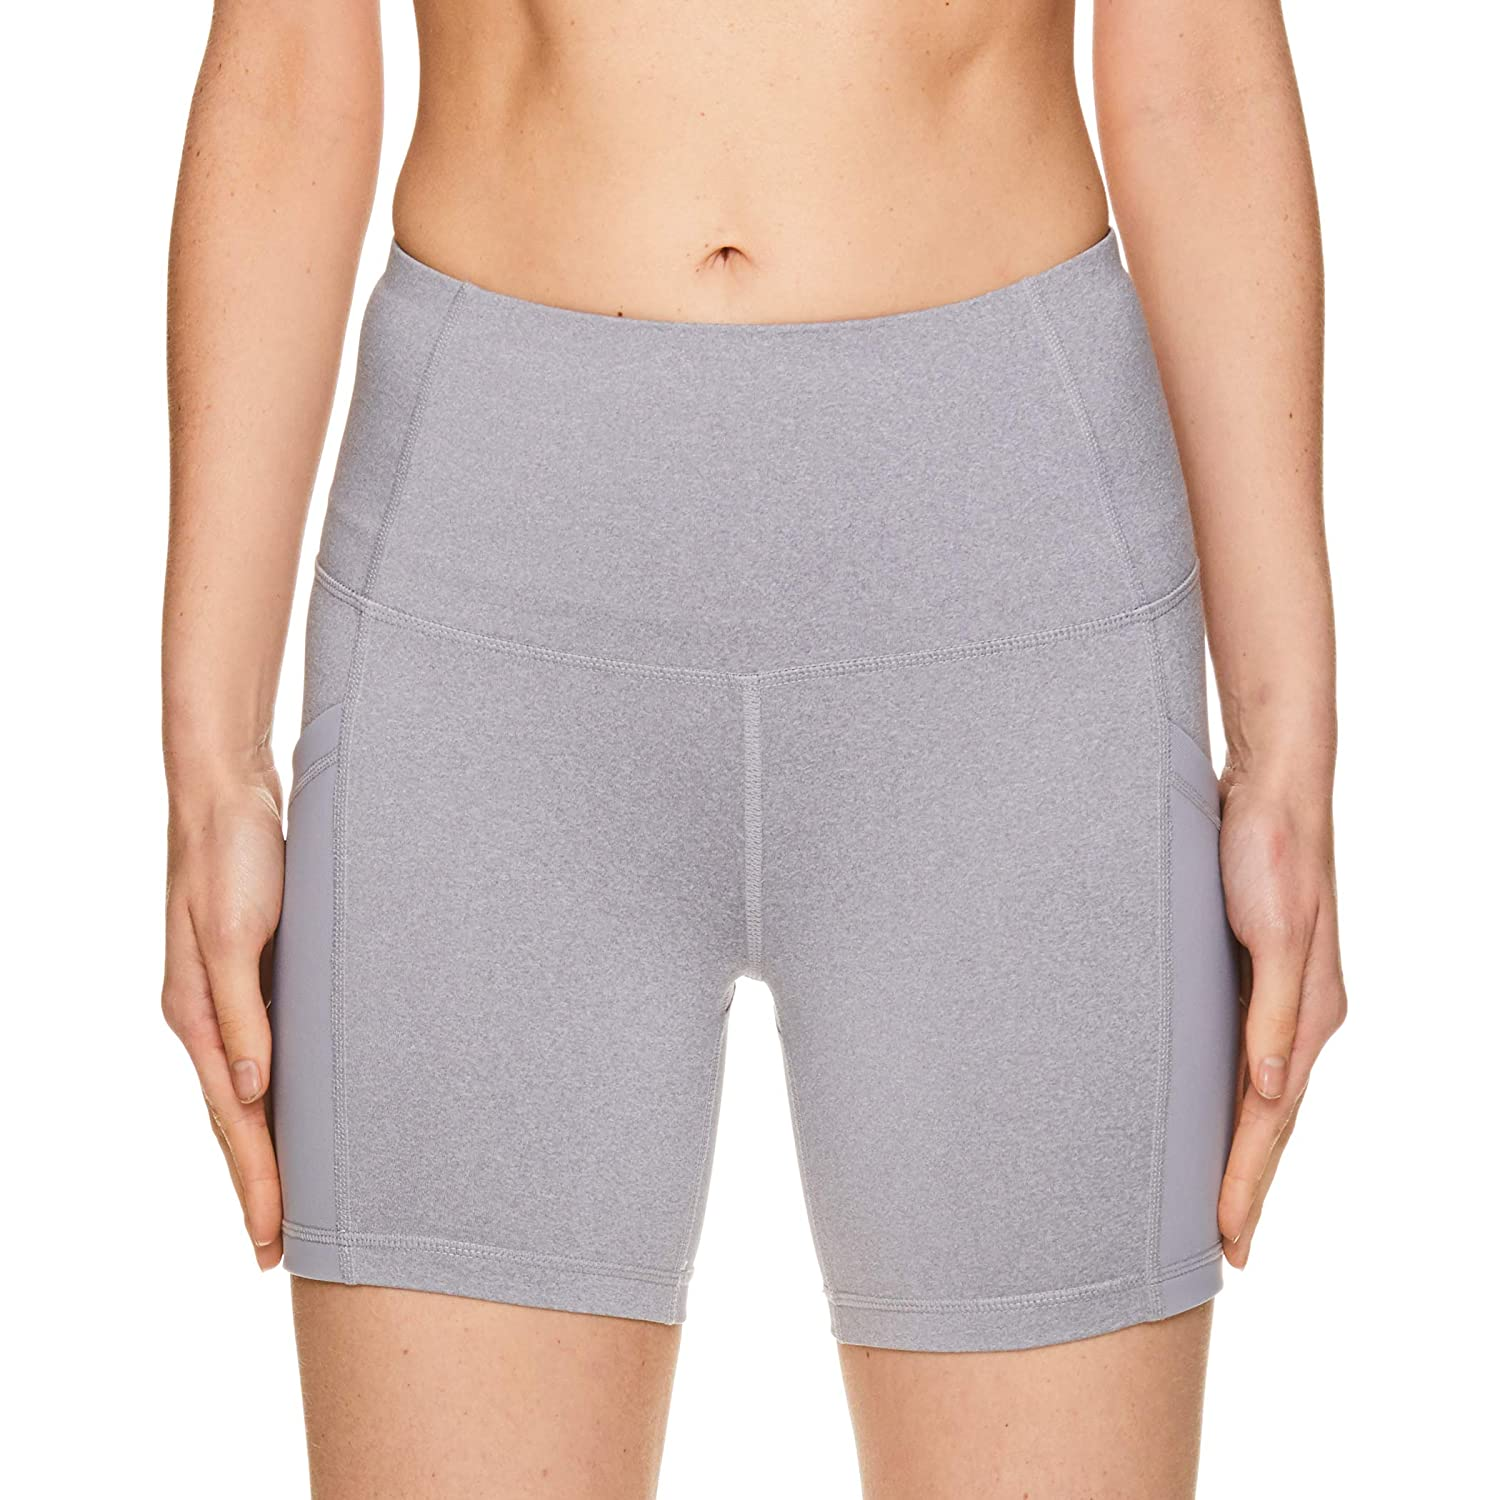 da67740ab839 Amazon.com: Reebok Women's Compression Running Shorts - High Waisted  Performance Workout Short: Clothing